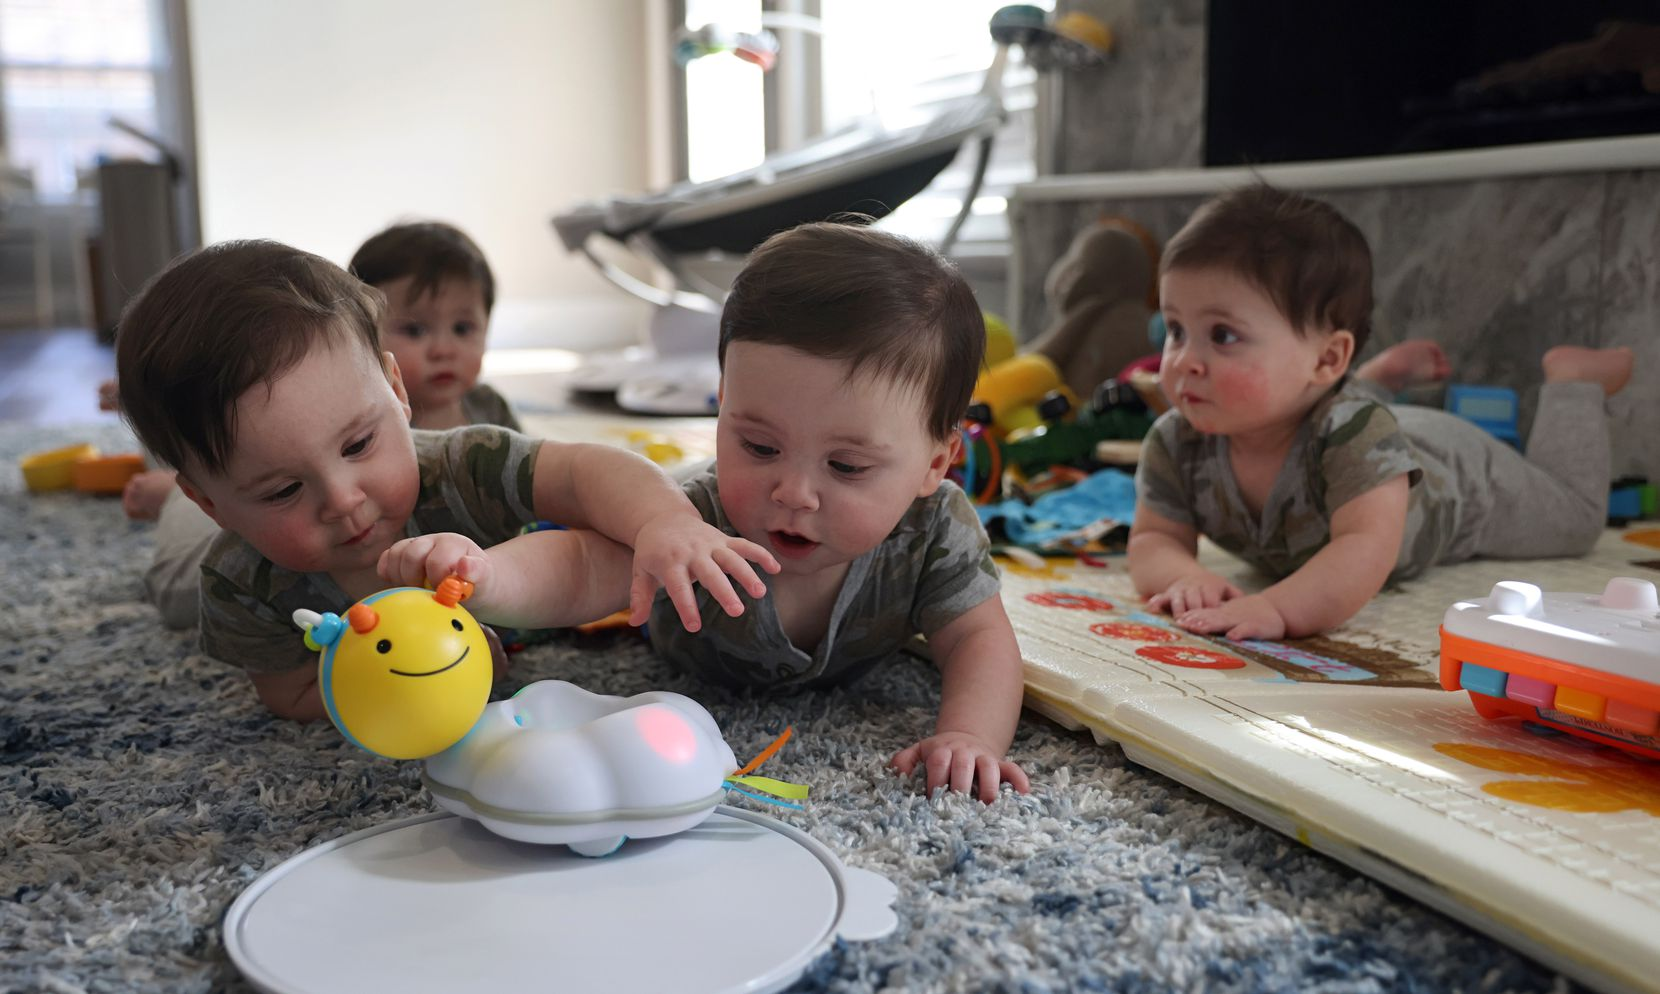 Henry (left) and Hudson (right) go after toys as Harrison (second from left) and Hardy (far right) play at the Marr home on Friday, Jan. 15, 2021, in Grapevine, Texas.